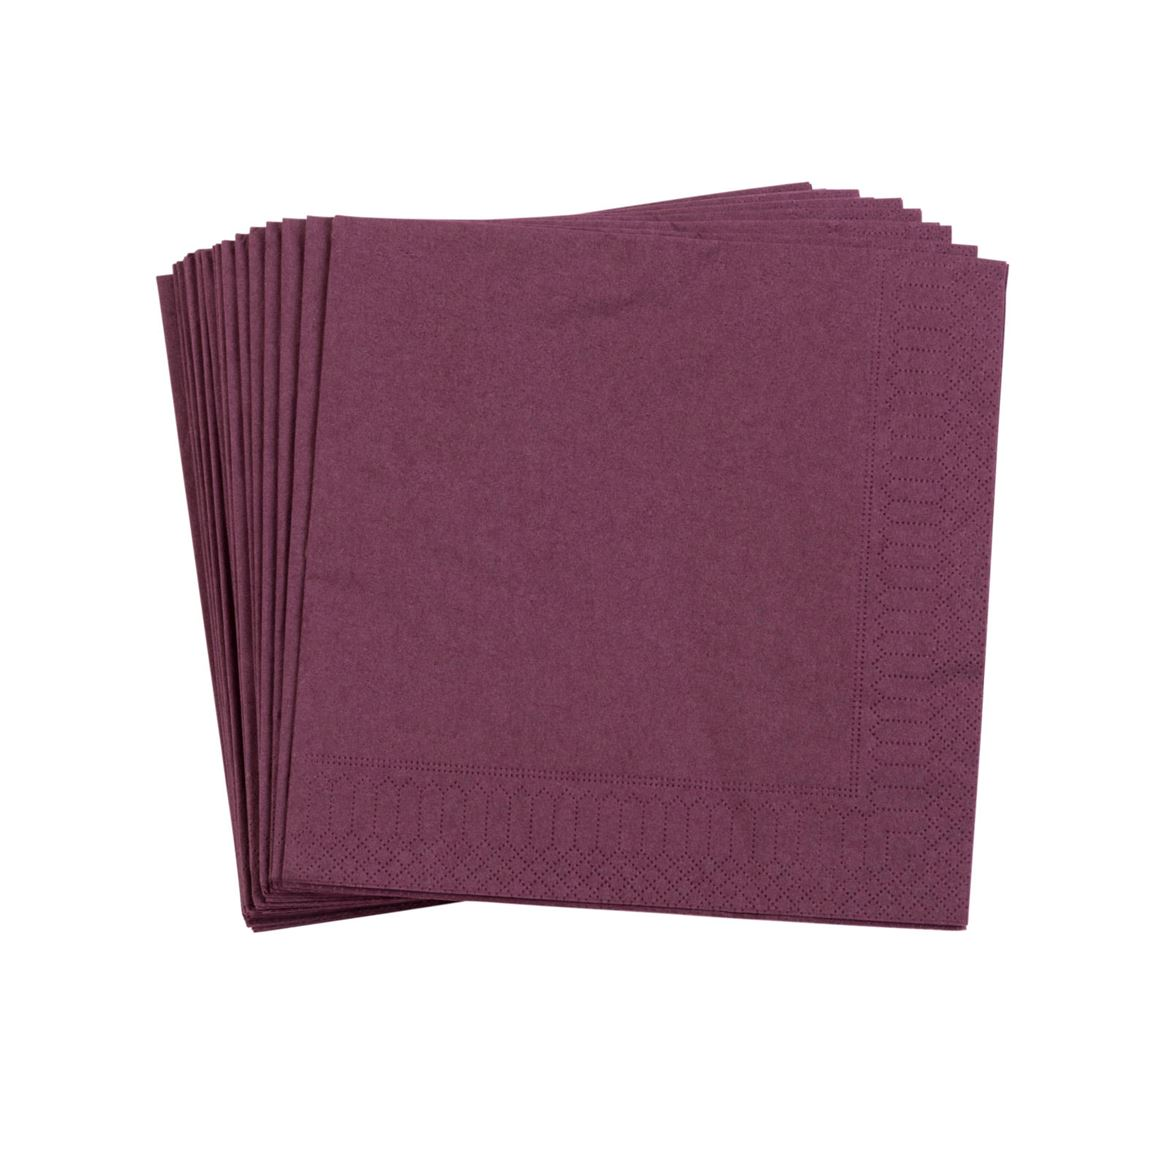 UNI Set de 20 serviettes rouge Larg. 33 x Long. 33 cm_uni-set-de-20-serviettes-rouge-larg--33-x-long--33-cm